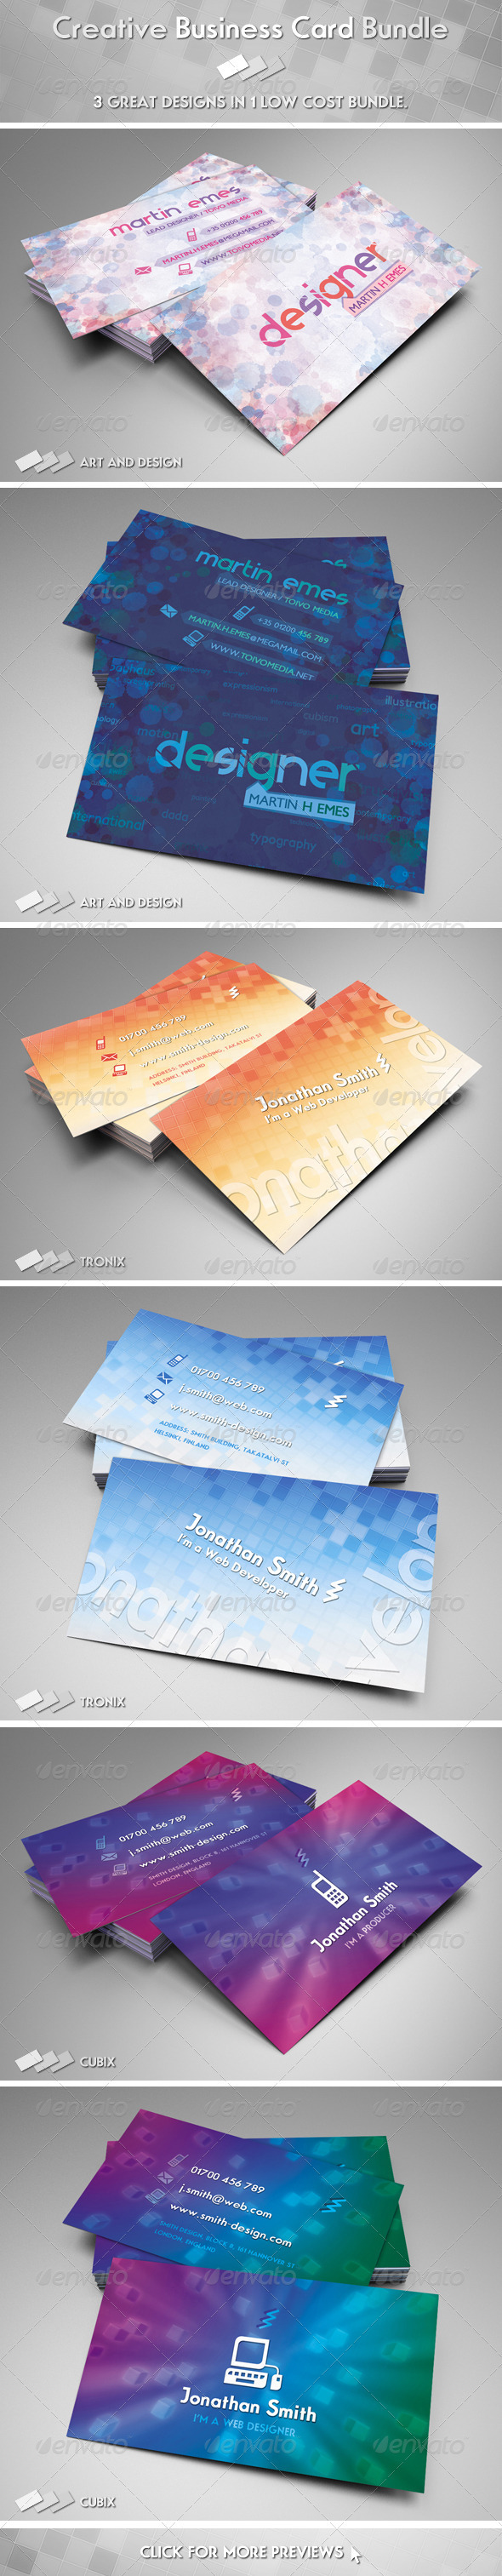 GraphicRiver Creative Business Card Bundle 3355376